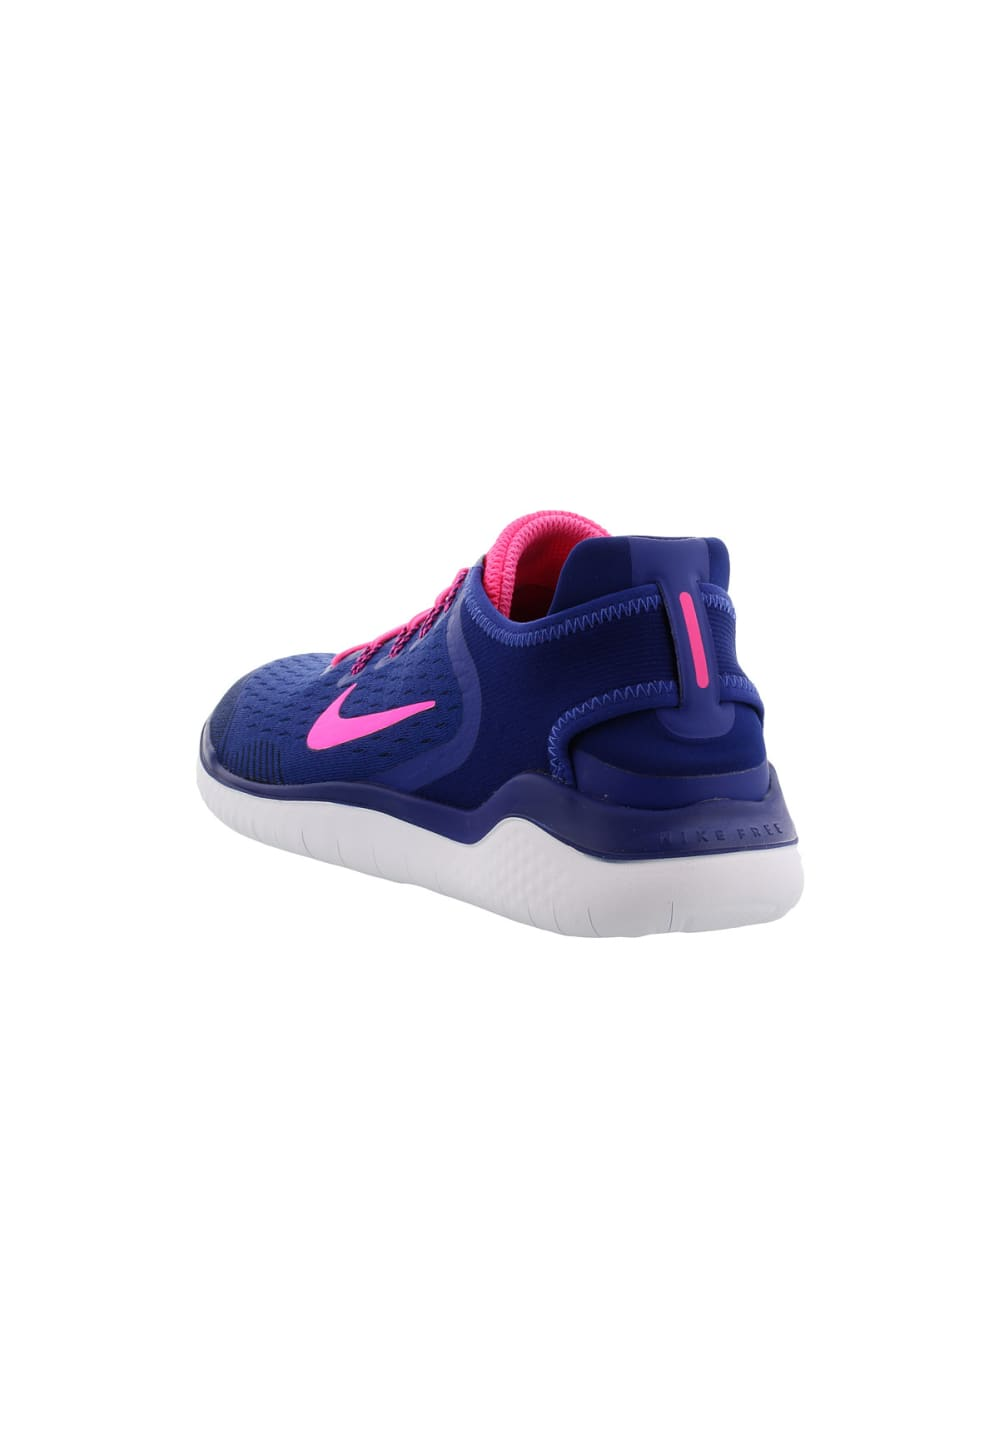 newest 4eac8 18b26 Nike Free RN 2018 - Running shoes for Women - Blue